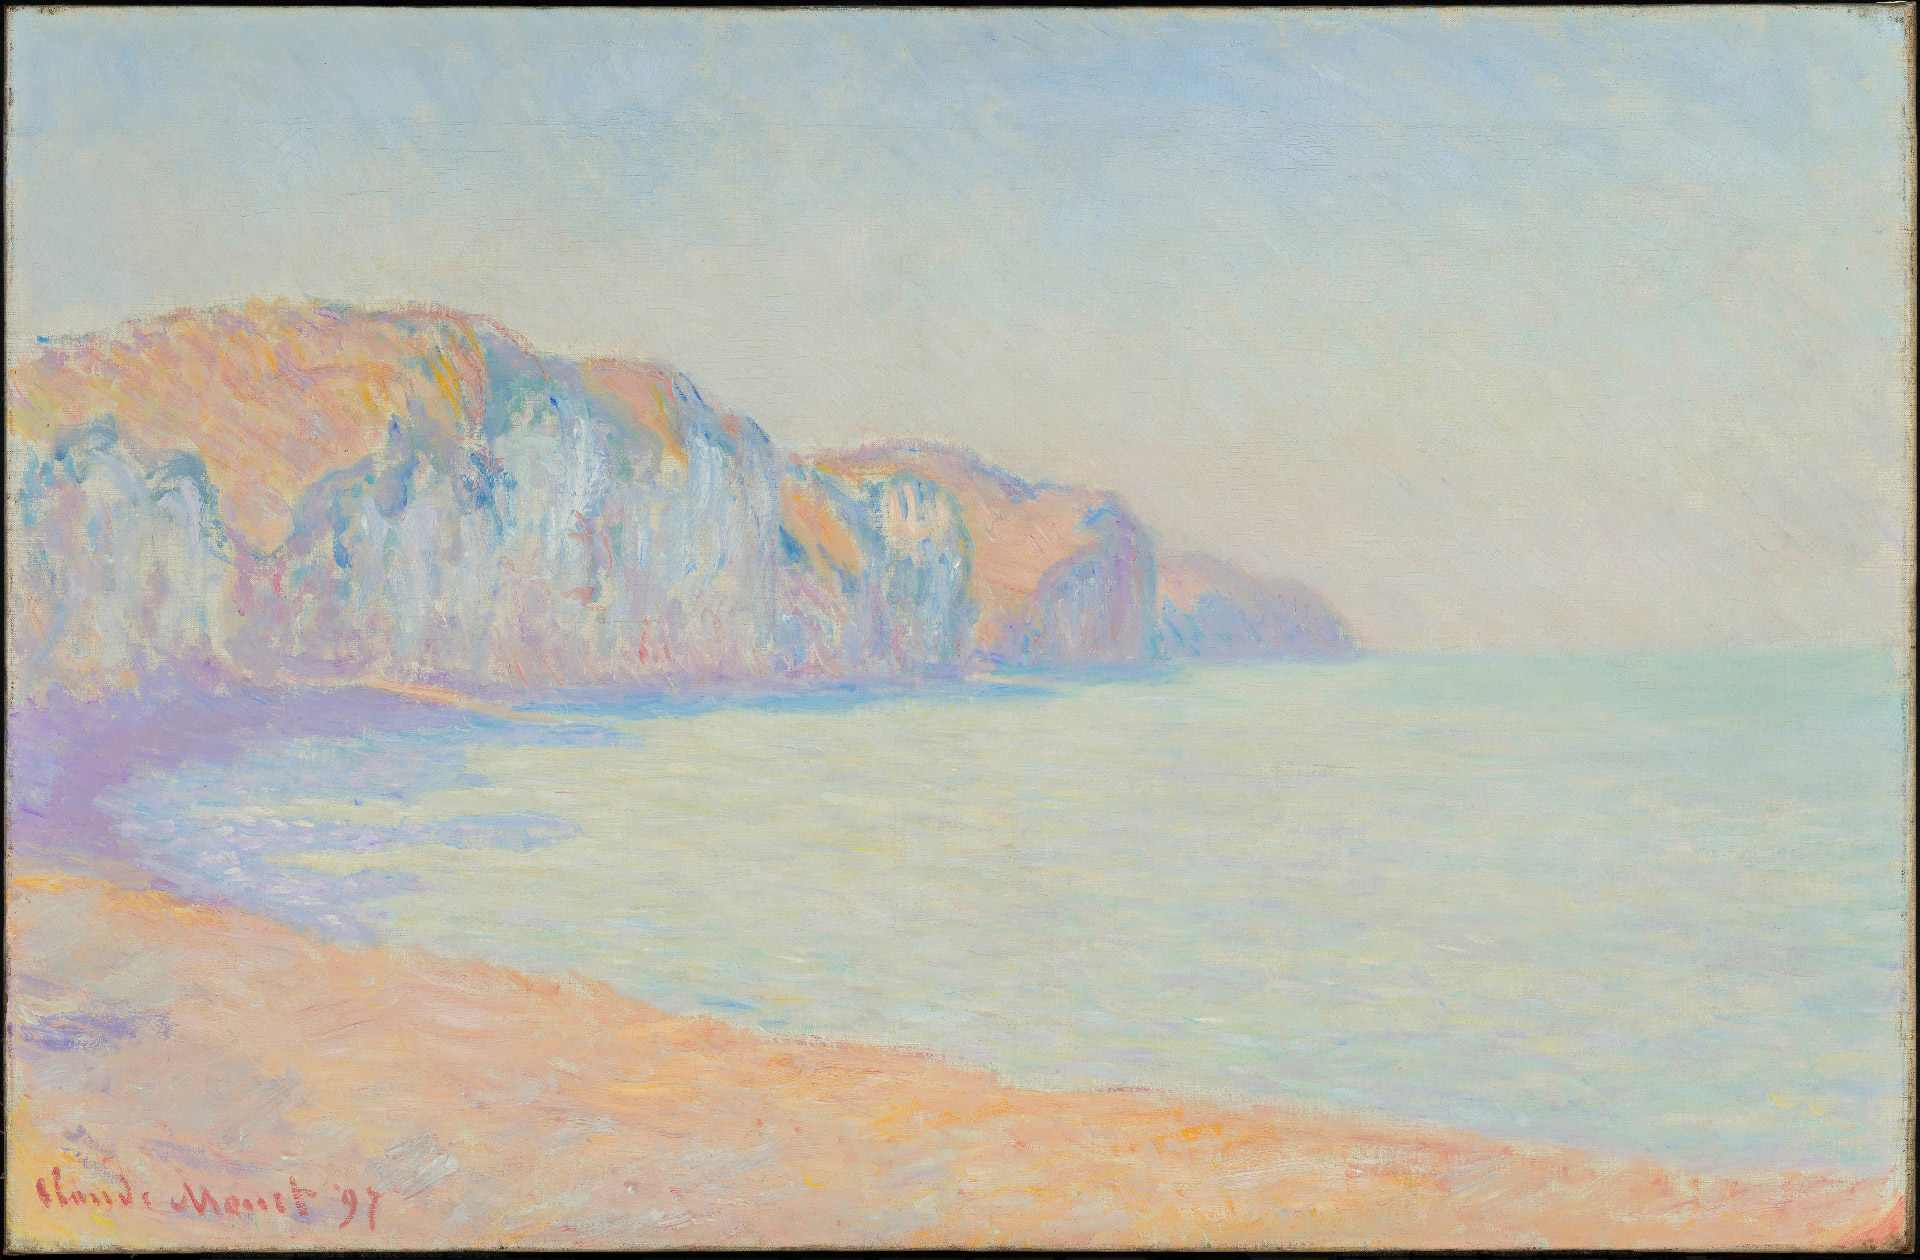 Claude Monet, A Cliff at Pourville in the Morning, 1897, oil on canvas, 65.8 x 100.5 cm. Purchase, John W. Tempest Fund.